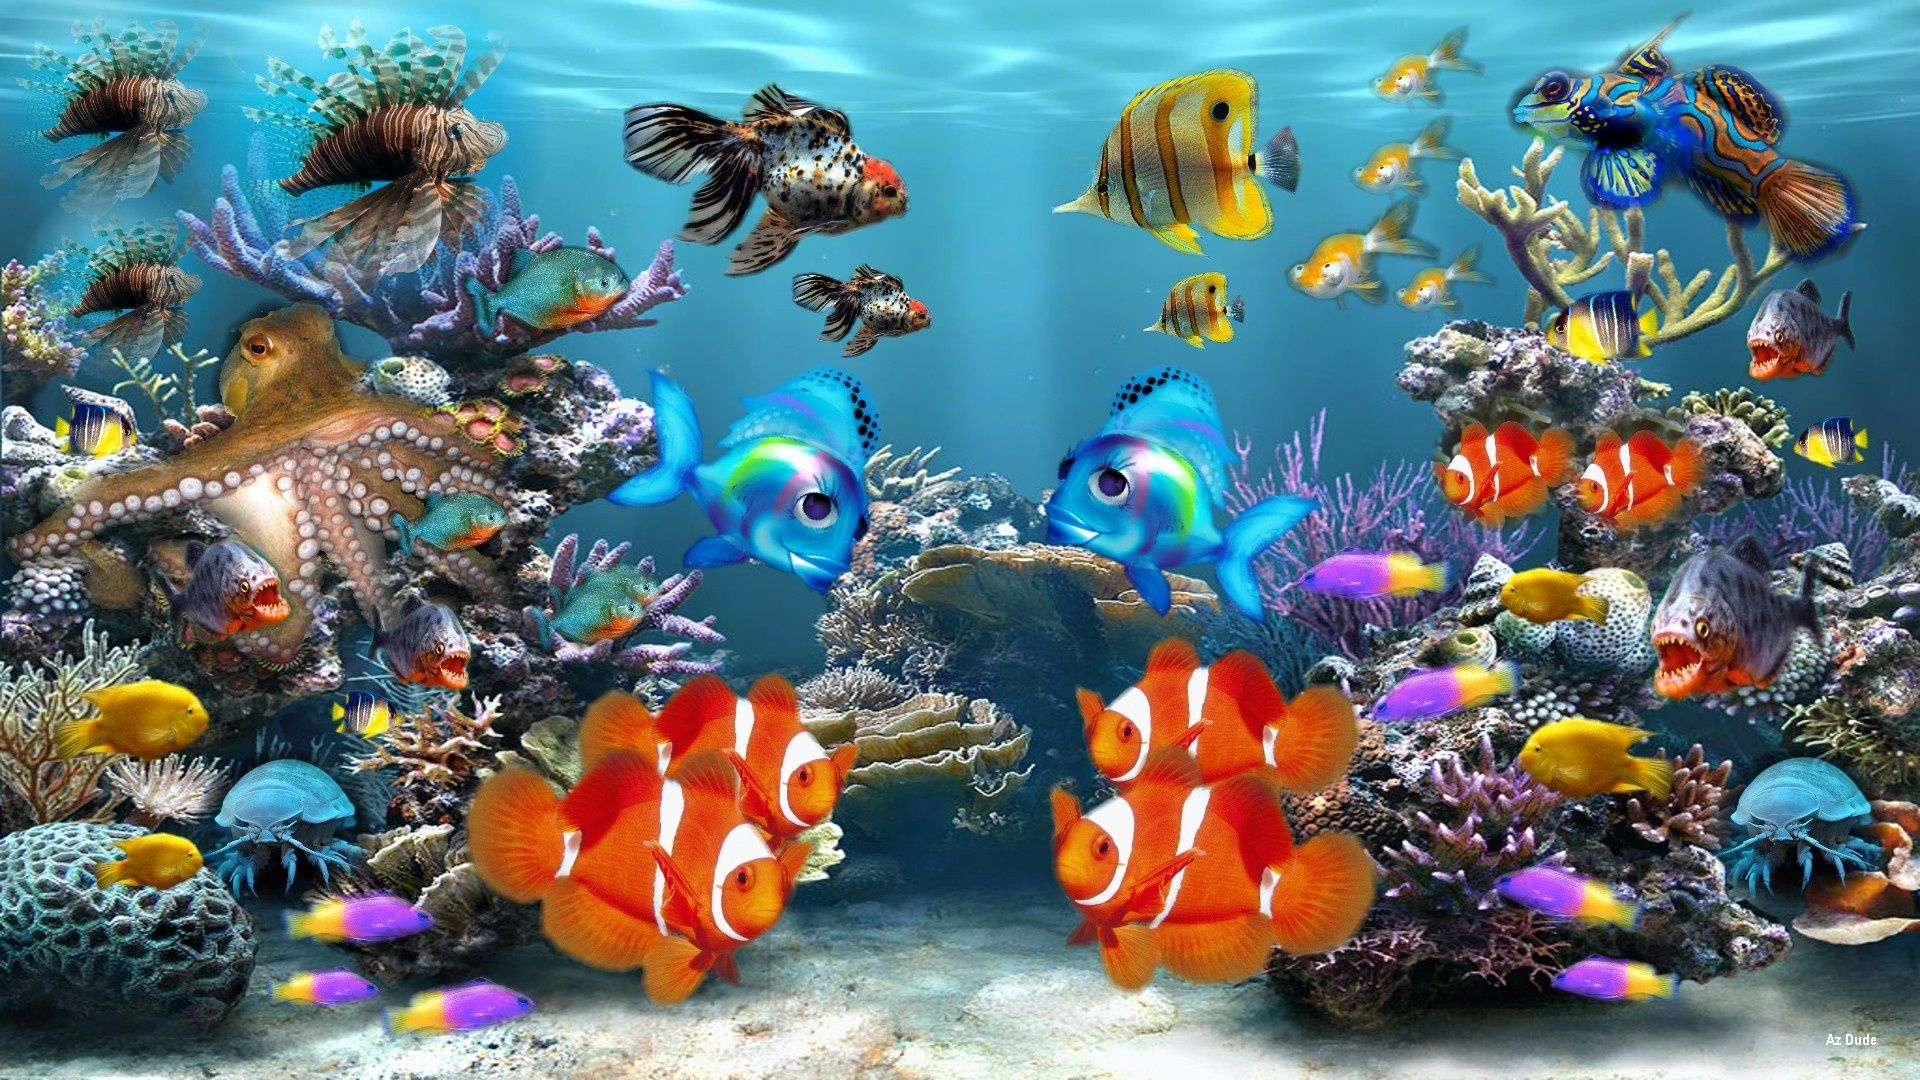 HD Fish Background, descargar la imagen de un fondo de pantalla de peces HD natural